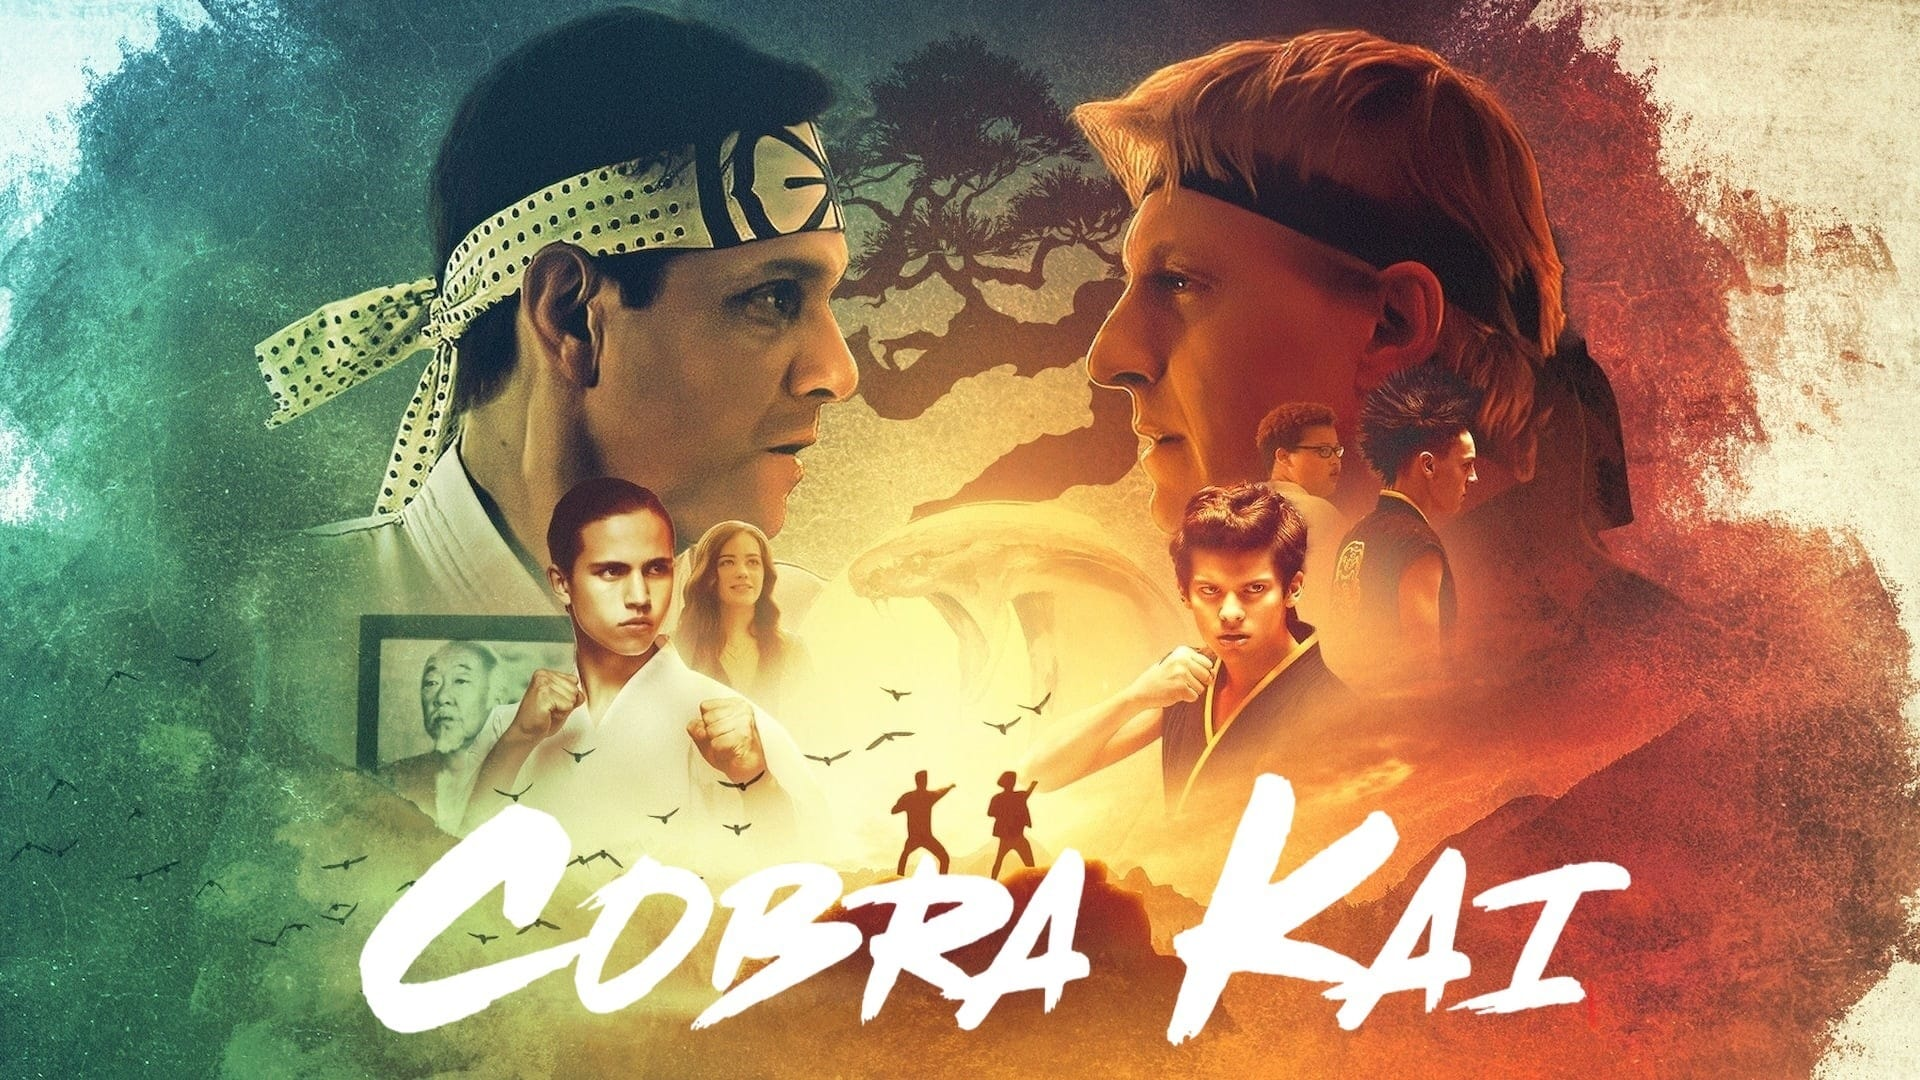 Cobra Kai - Season 3